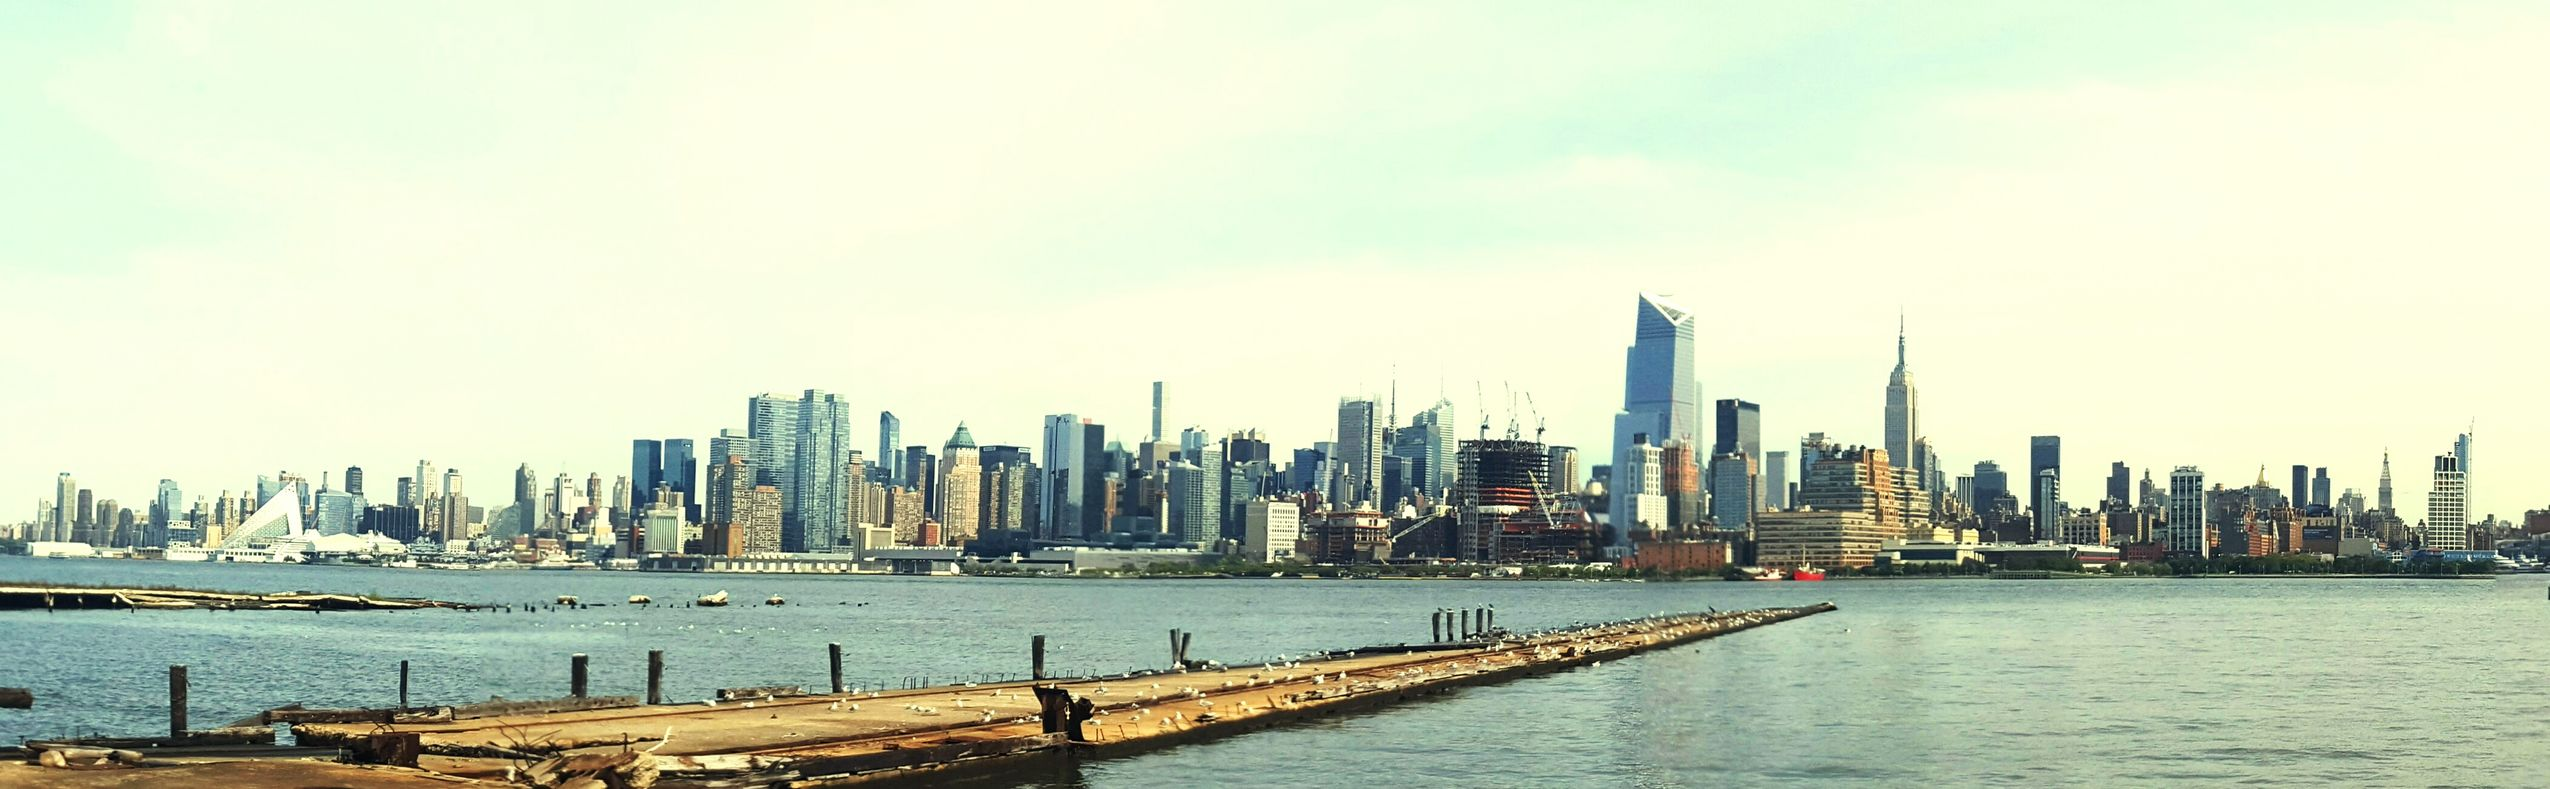 Manhattan Skyline City That Never Sleeps Manhattan Life Love New York Beautiful View Beautiful Day Start Of A New Season New Beginings Reflecting Back Travel Destinations Modern Harbor